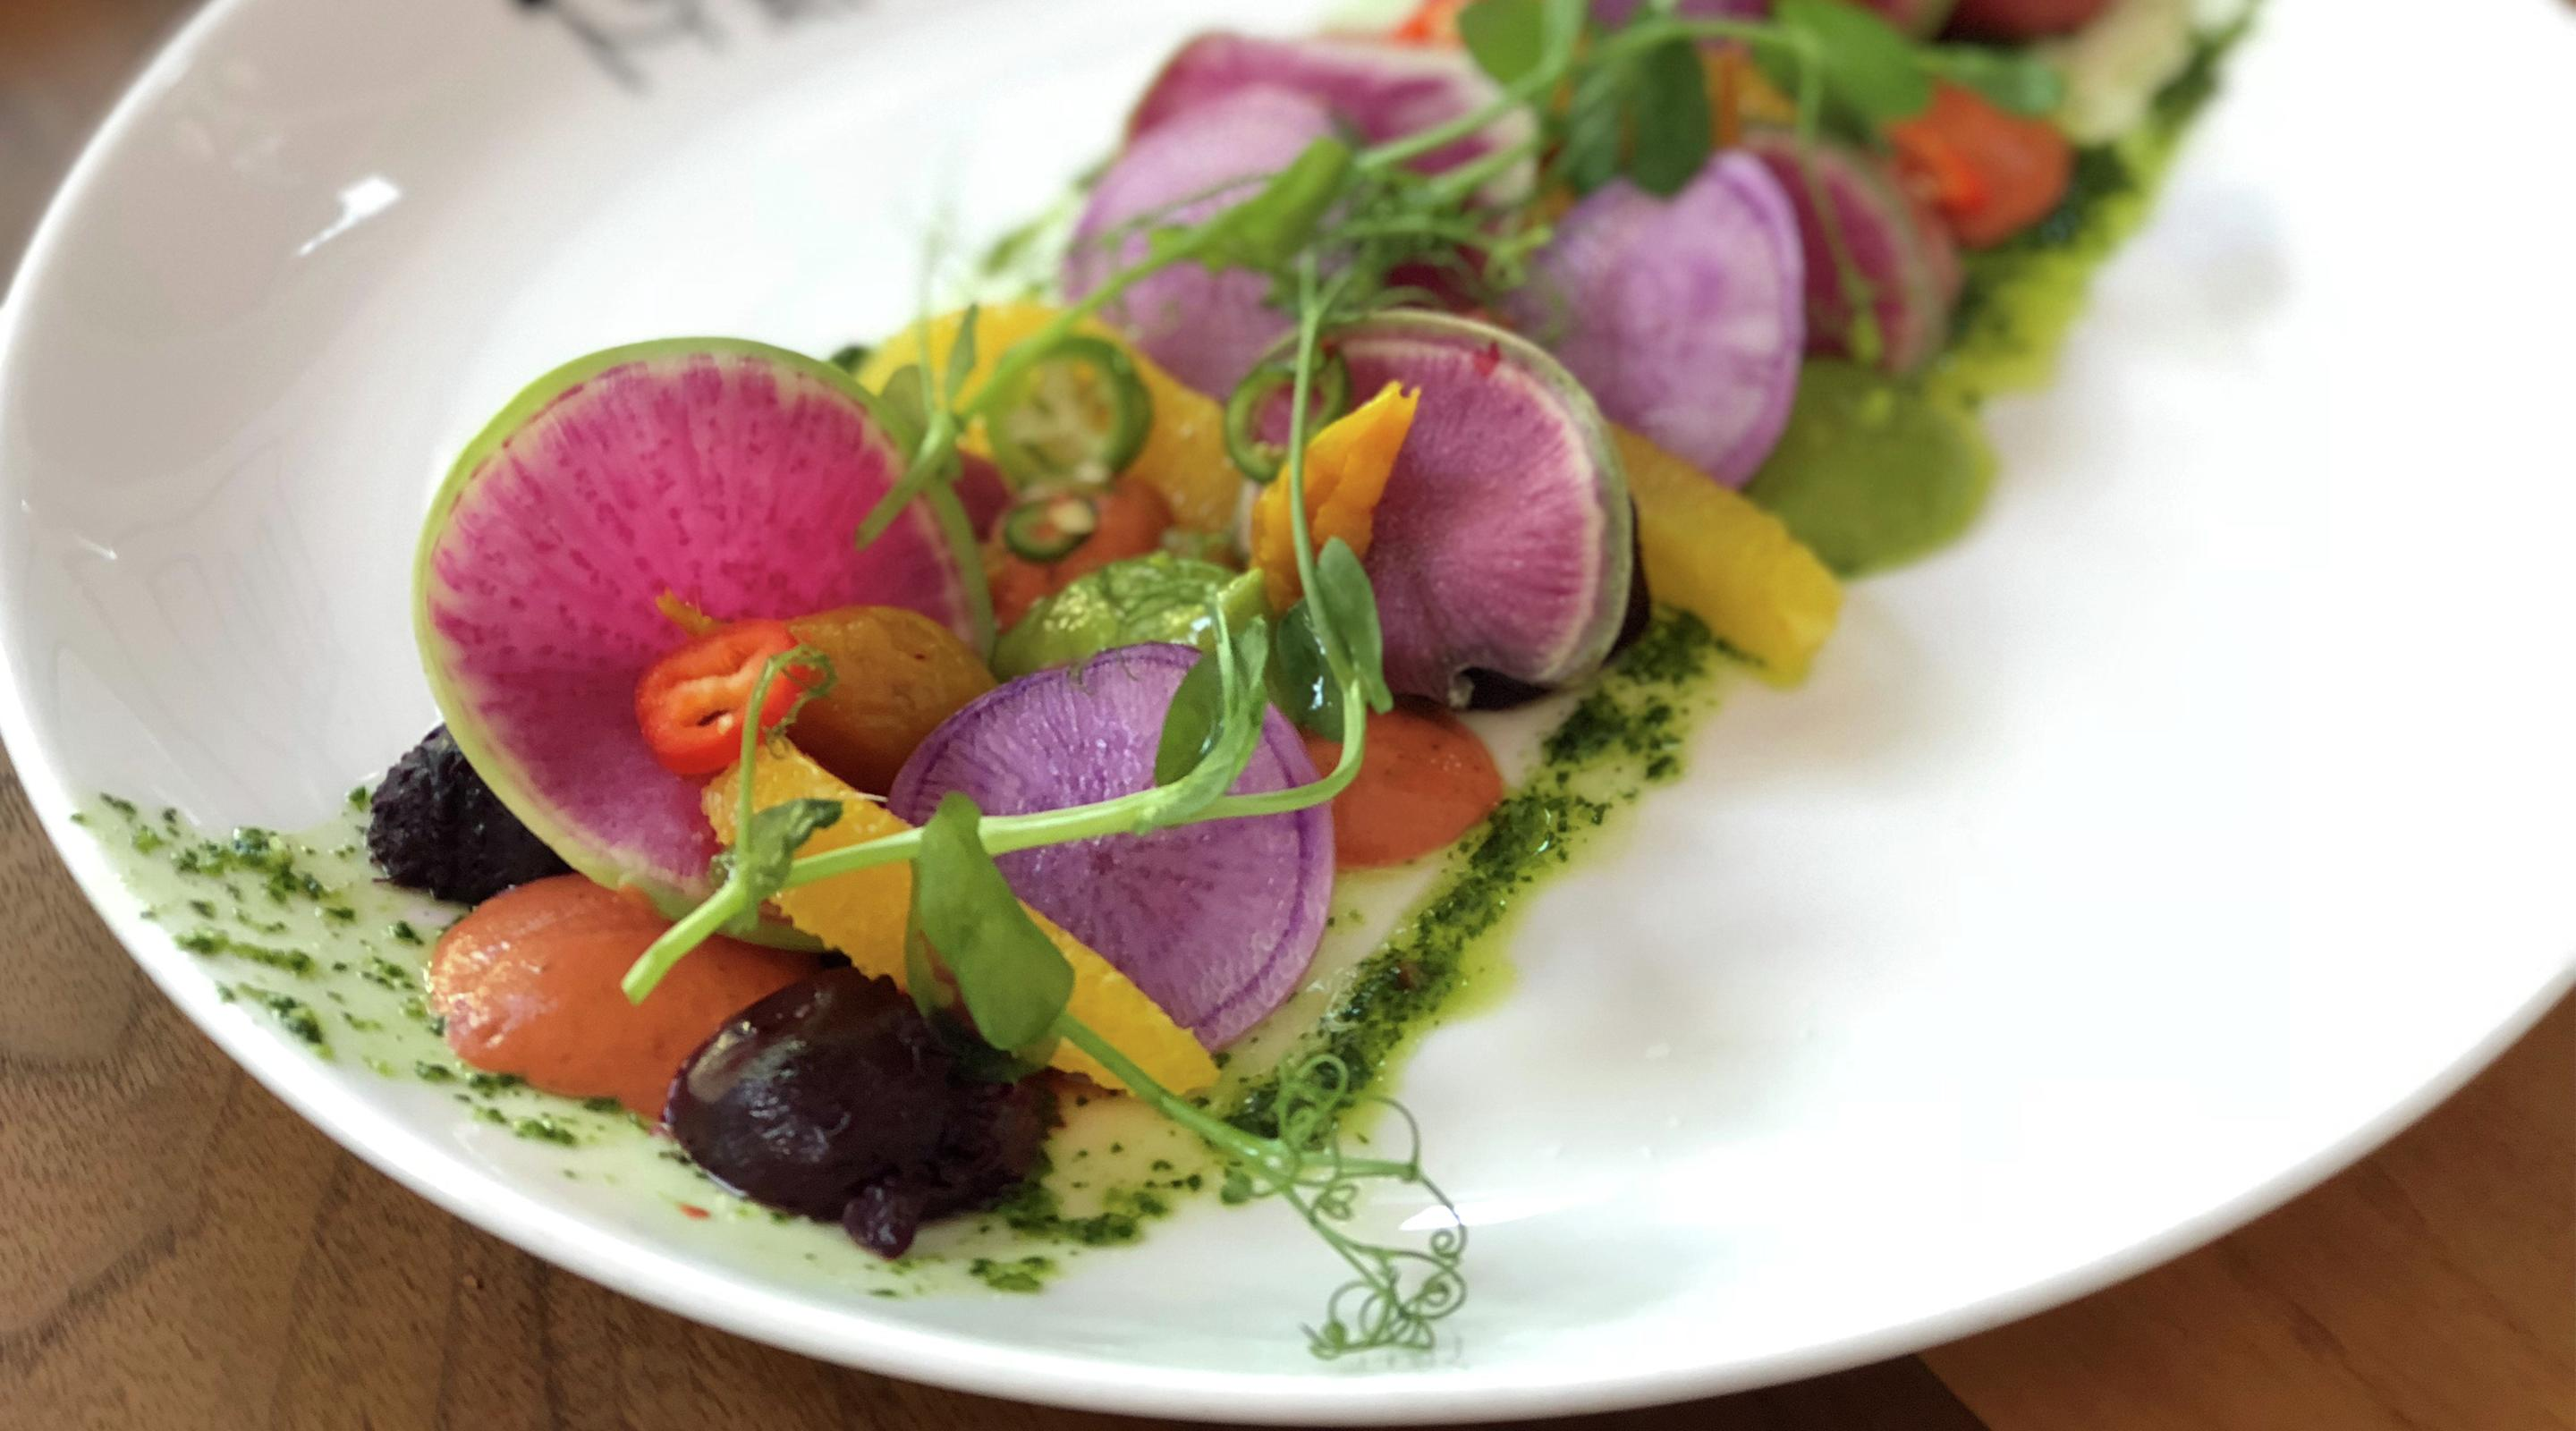 Border Grill at Mandalay Bay presents their Yucatan roasted beets.